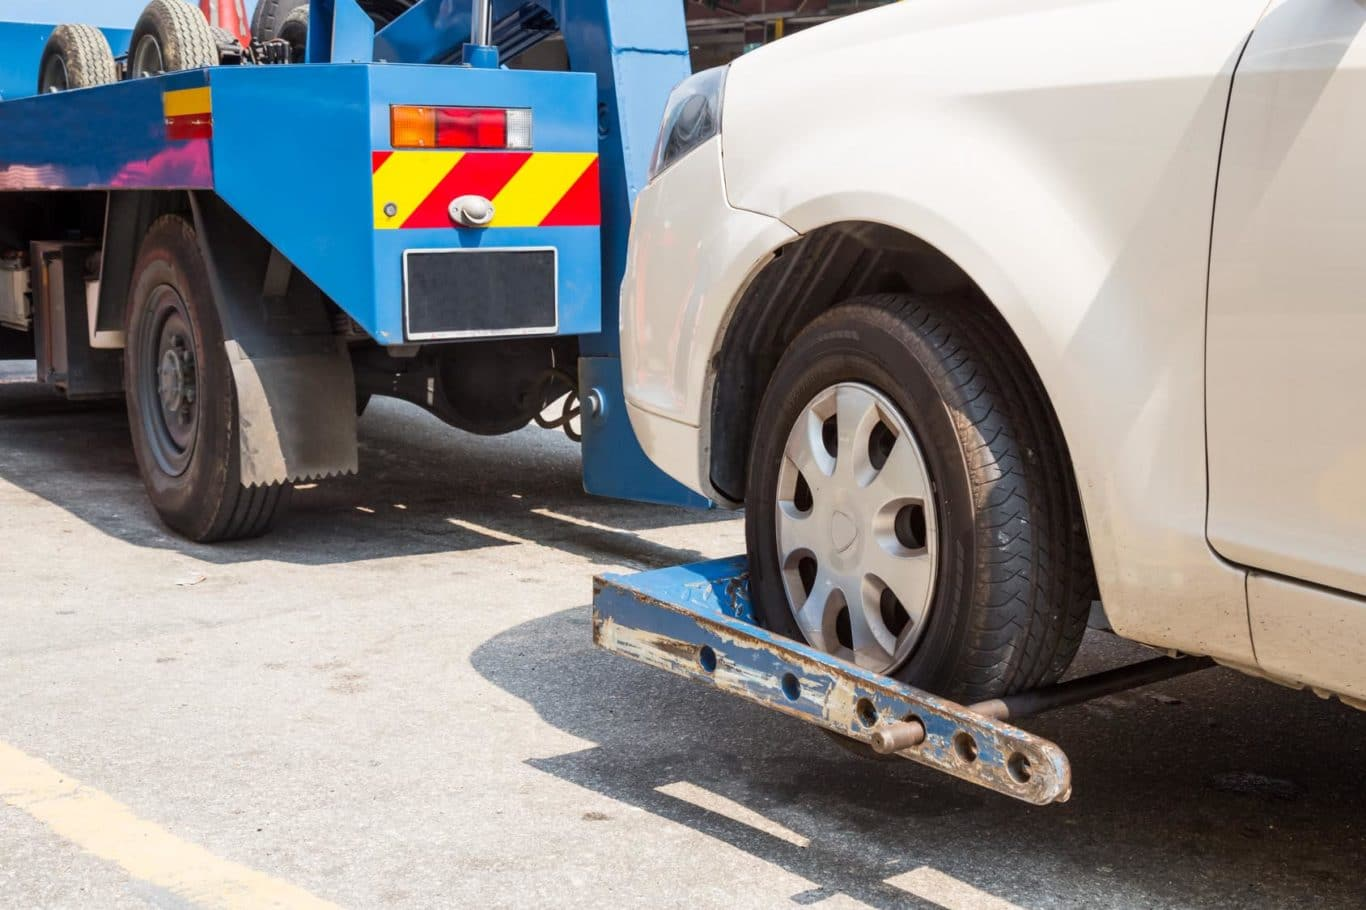 Dublin 16 (D16) Dún Laoghaire–Rathdown, South Dublin expert Car Towing services